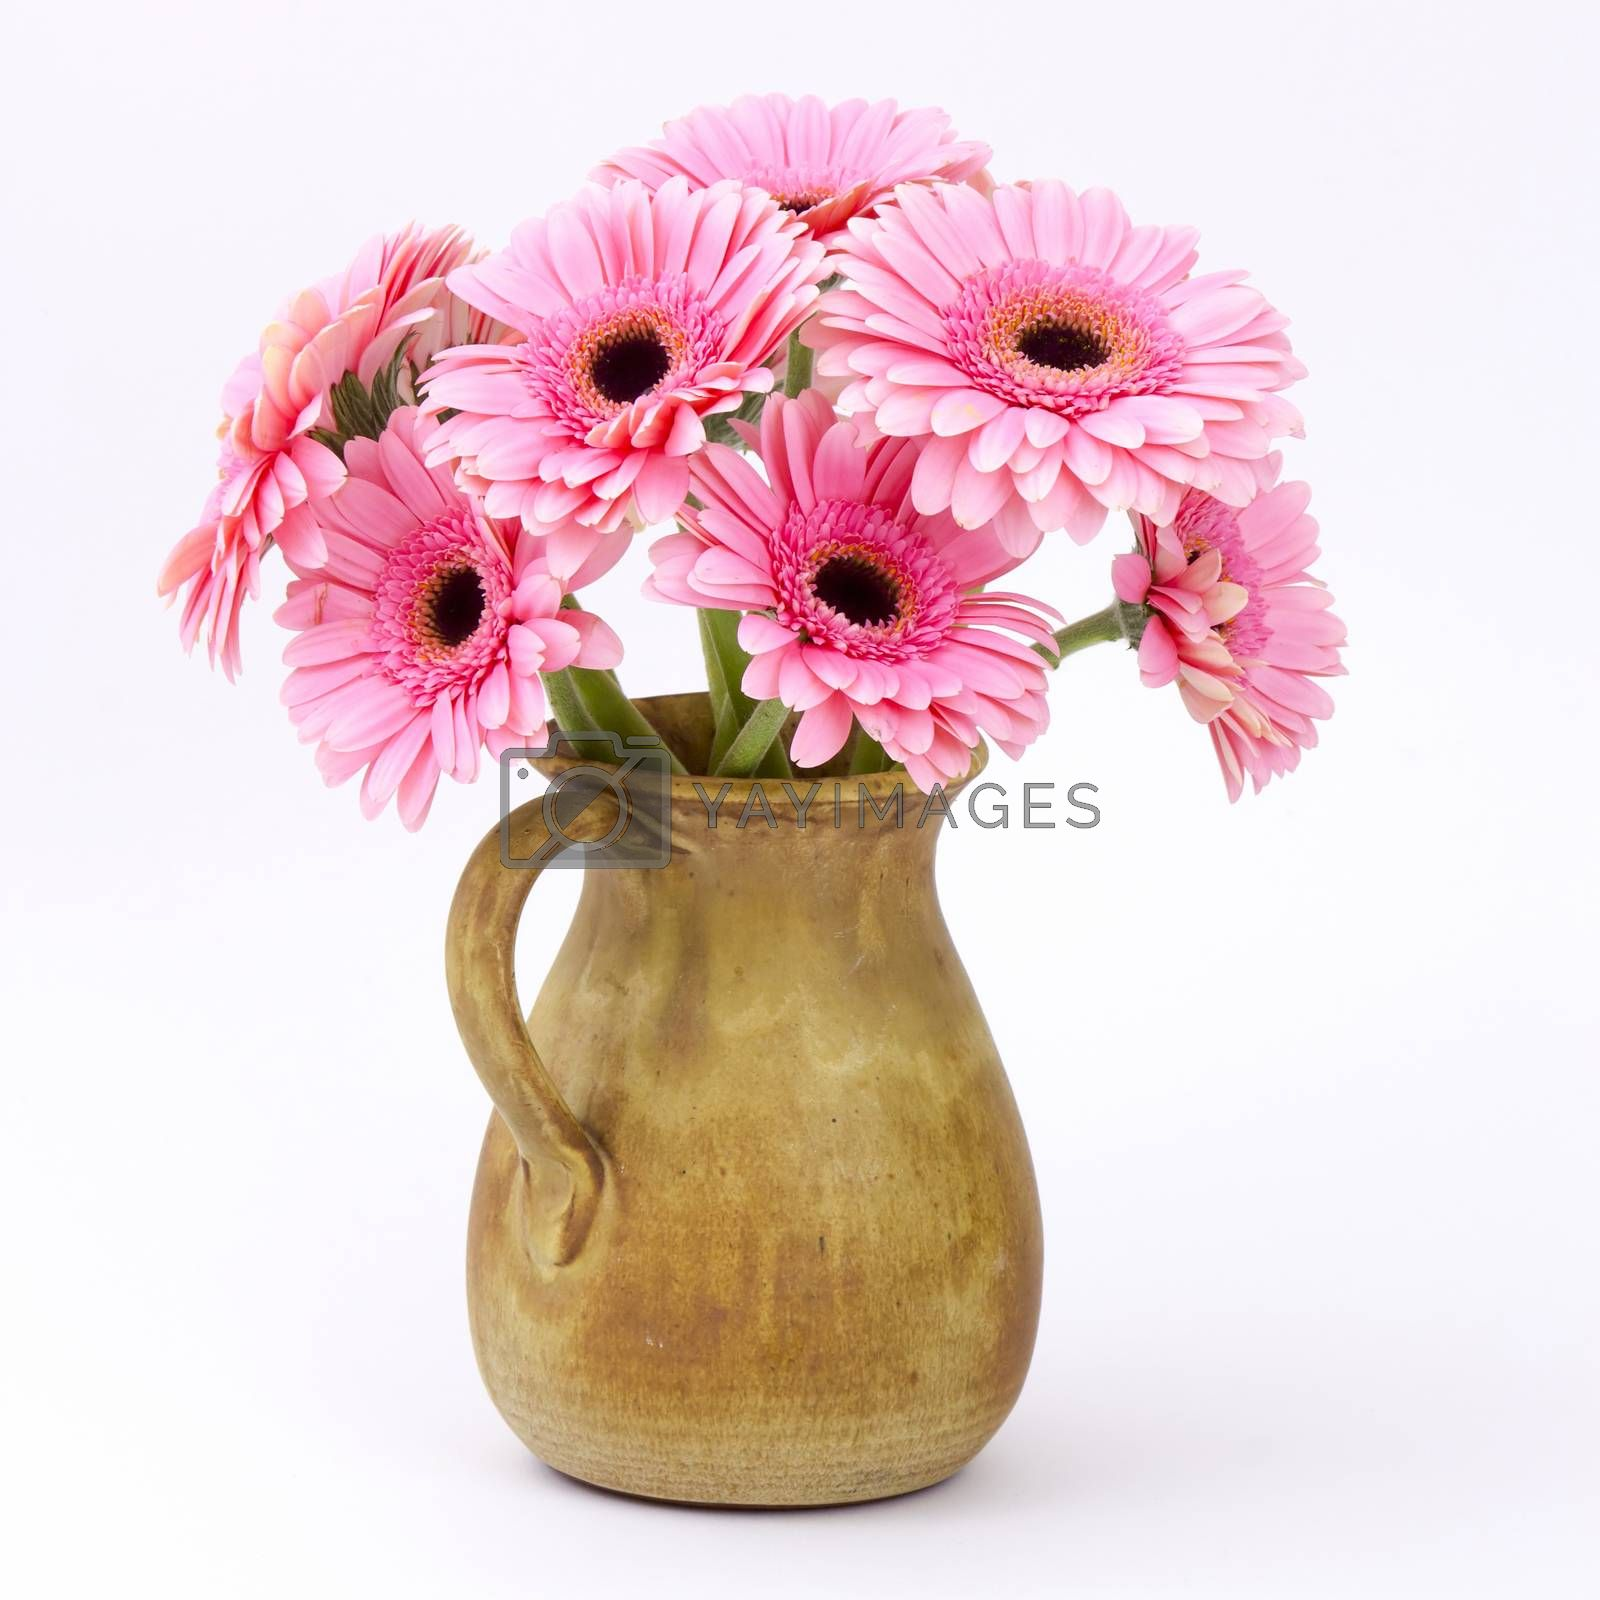 pink gerbera flowers in a vase